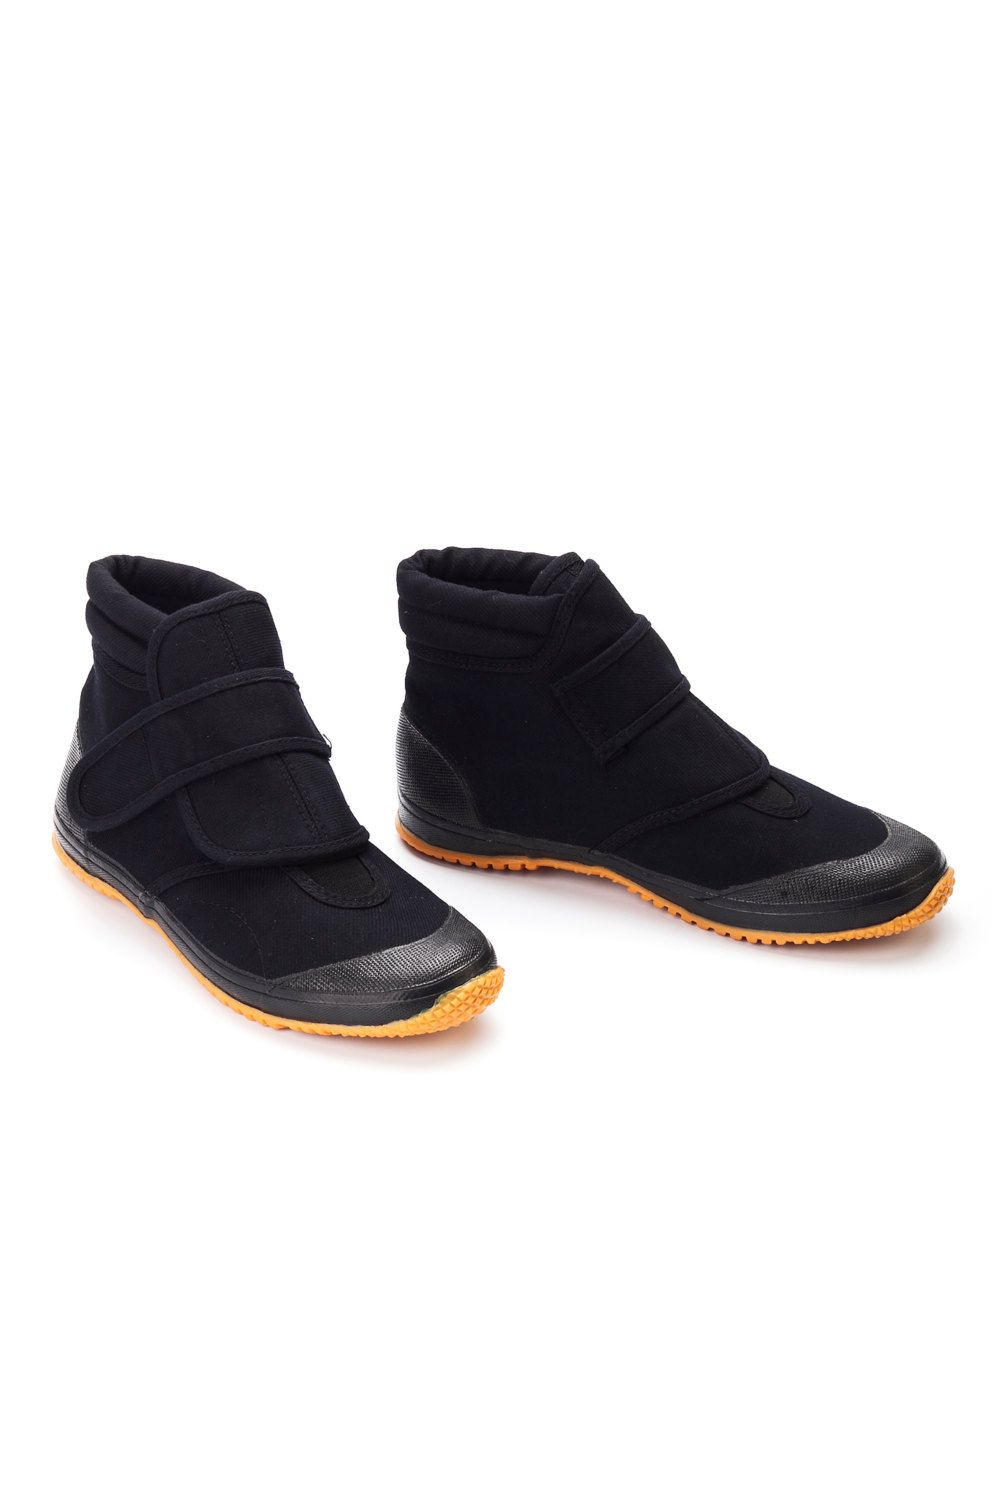 Japanese Vegan shoes Anklehigh ultralight by